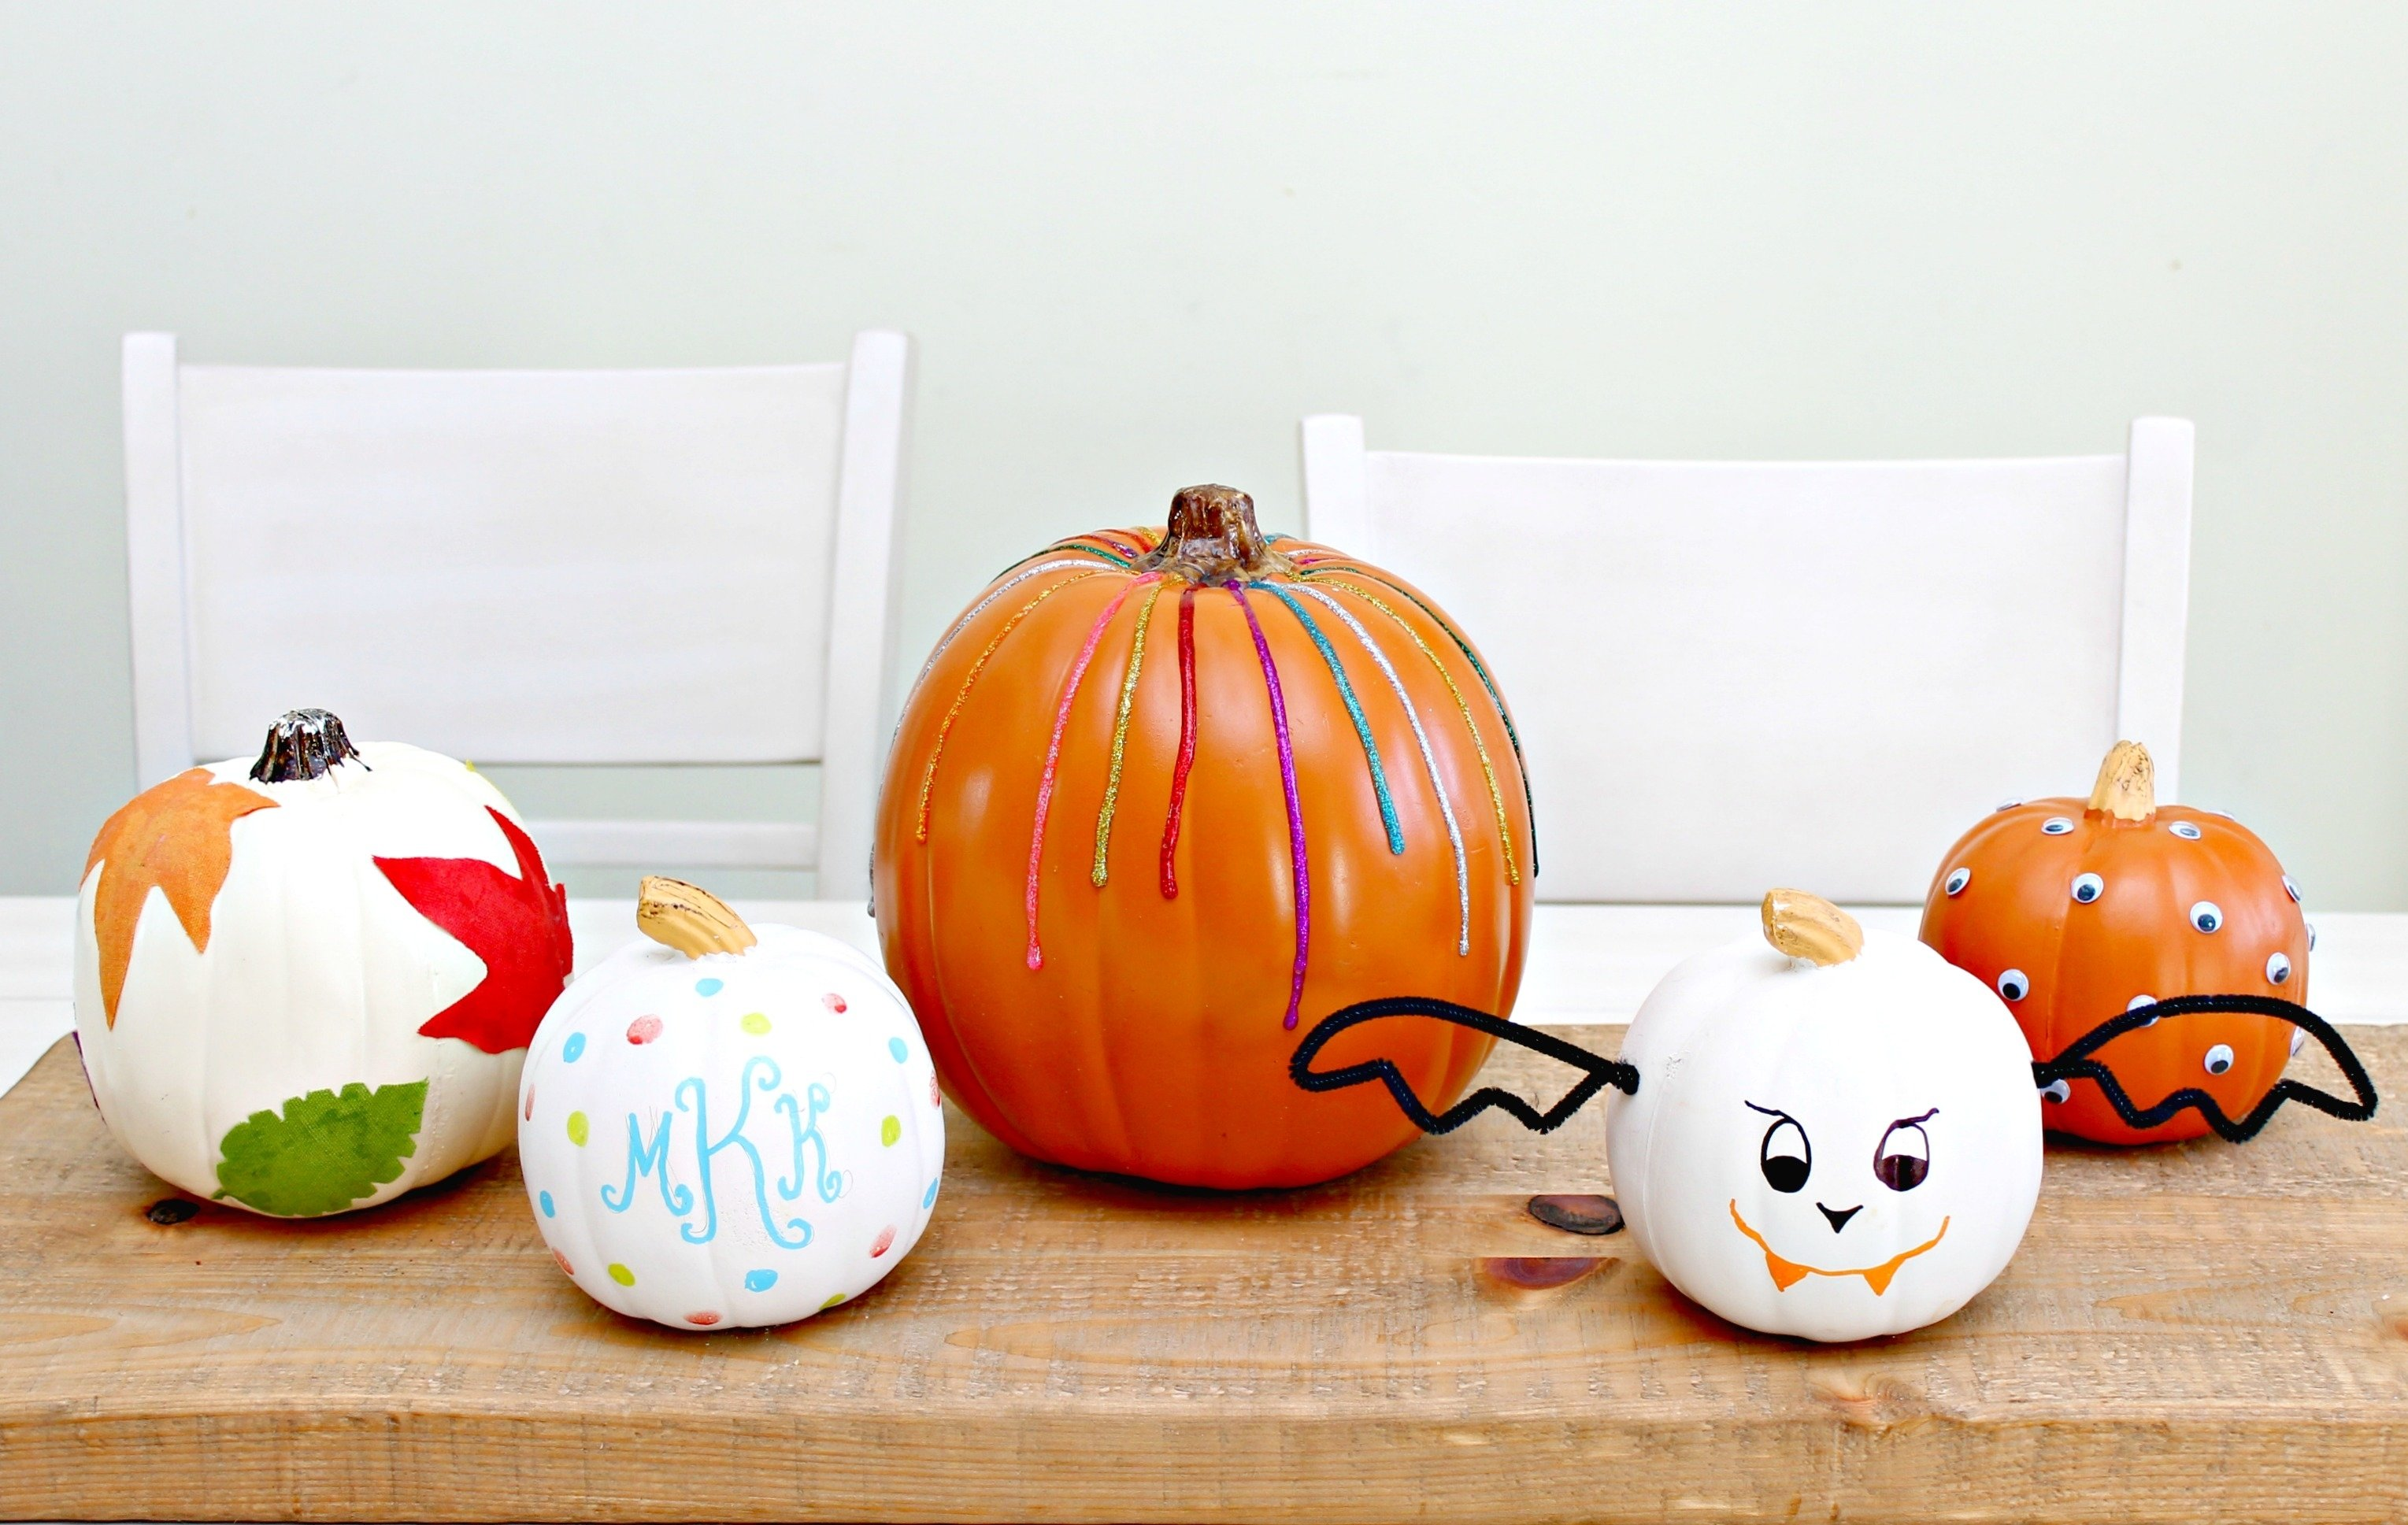 10 Beautiful Pumpkin Decorating Ideas Without Carving For Kids no carve pumpkin decorating ideas mom 4 real 1 2020